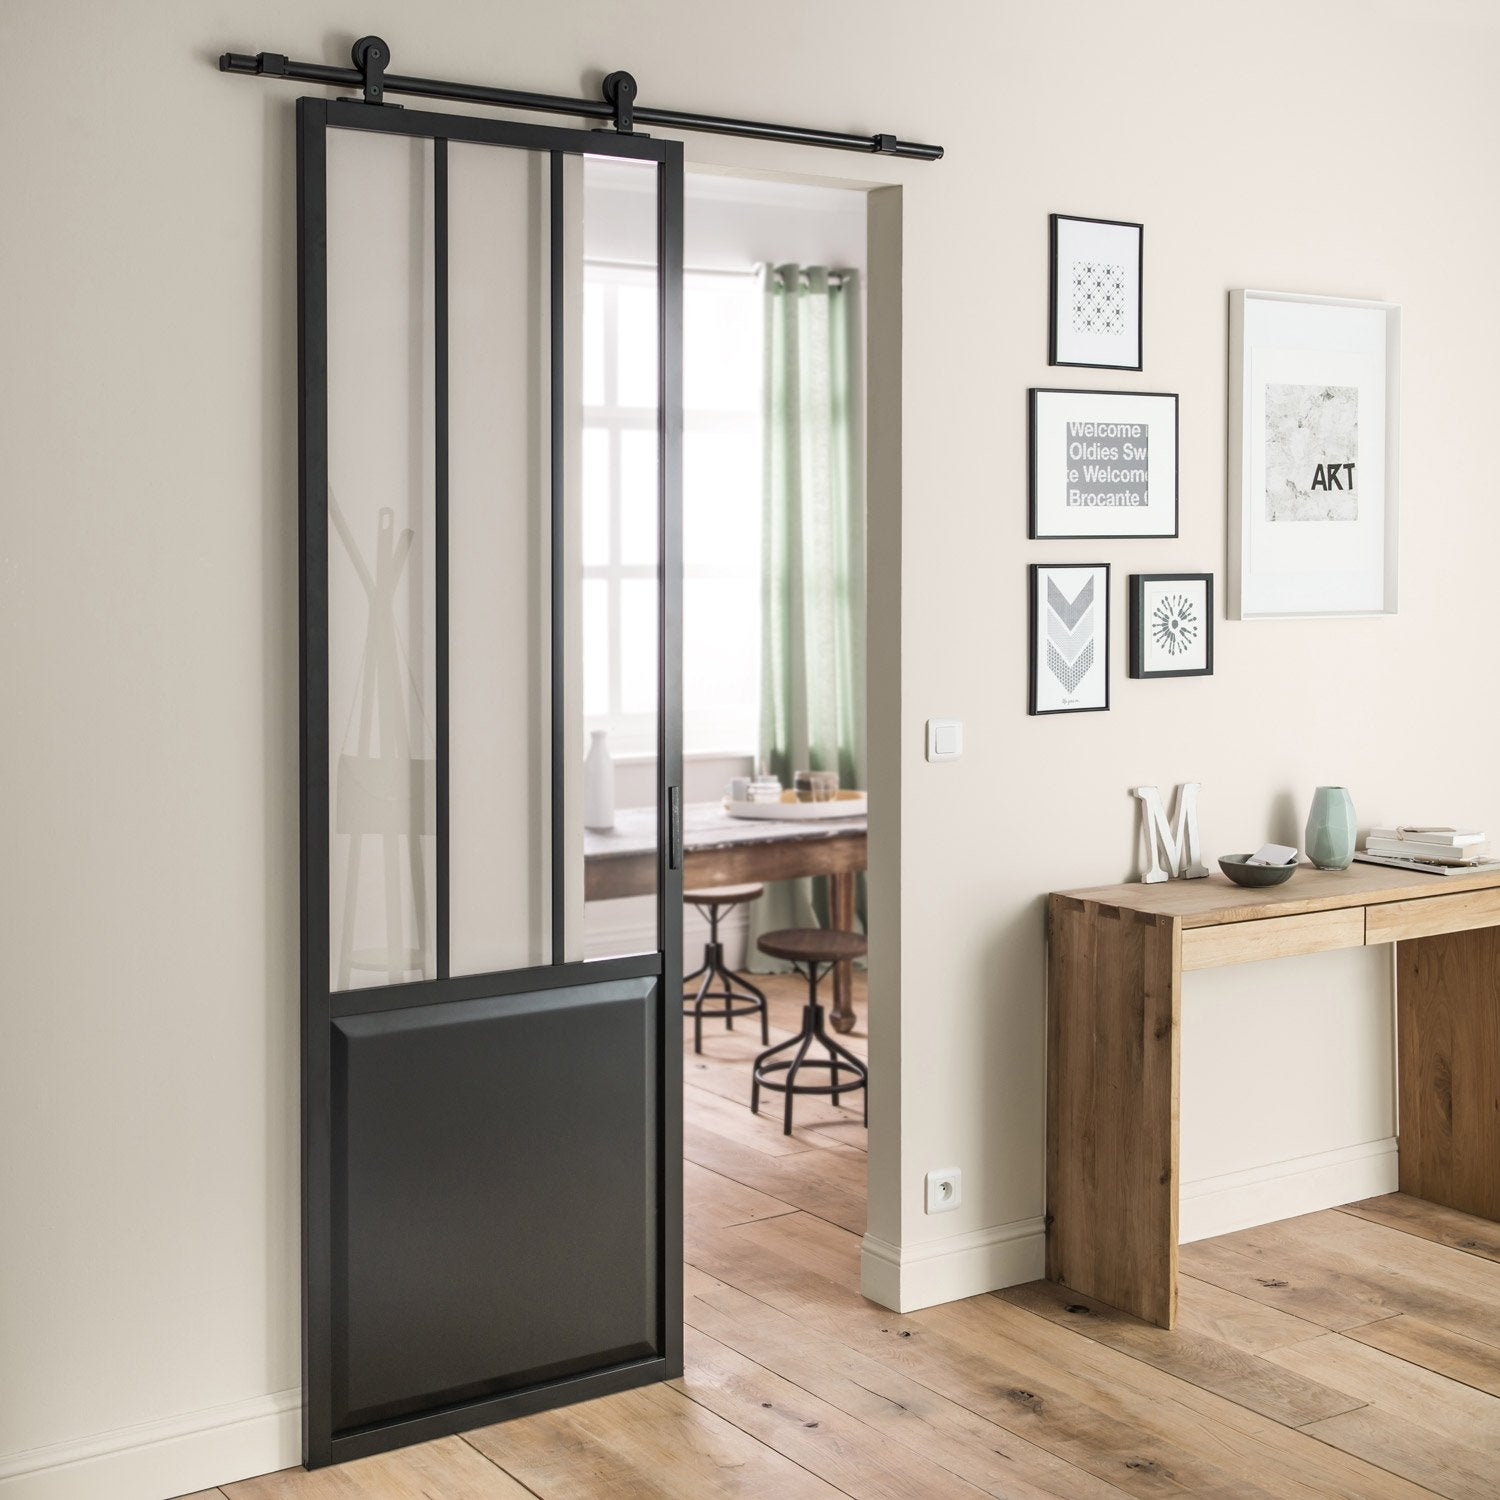 Ensemble porte coulissante atelier mdf rev tu avec le rail for Porte verriere atelier